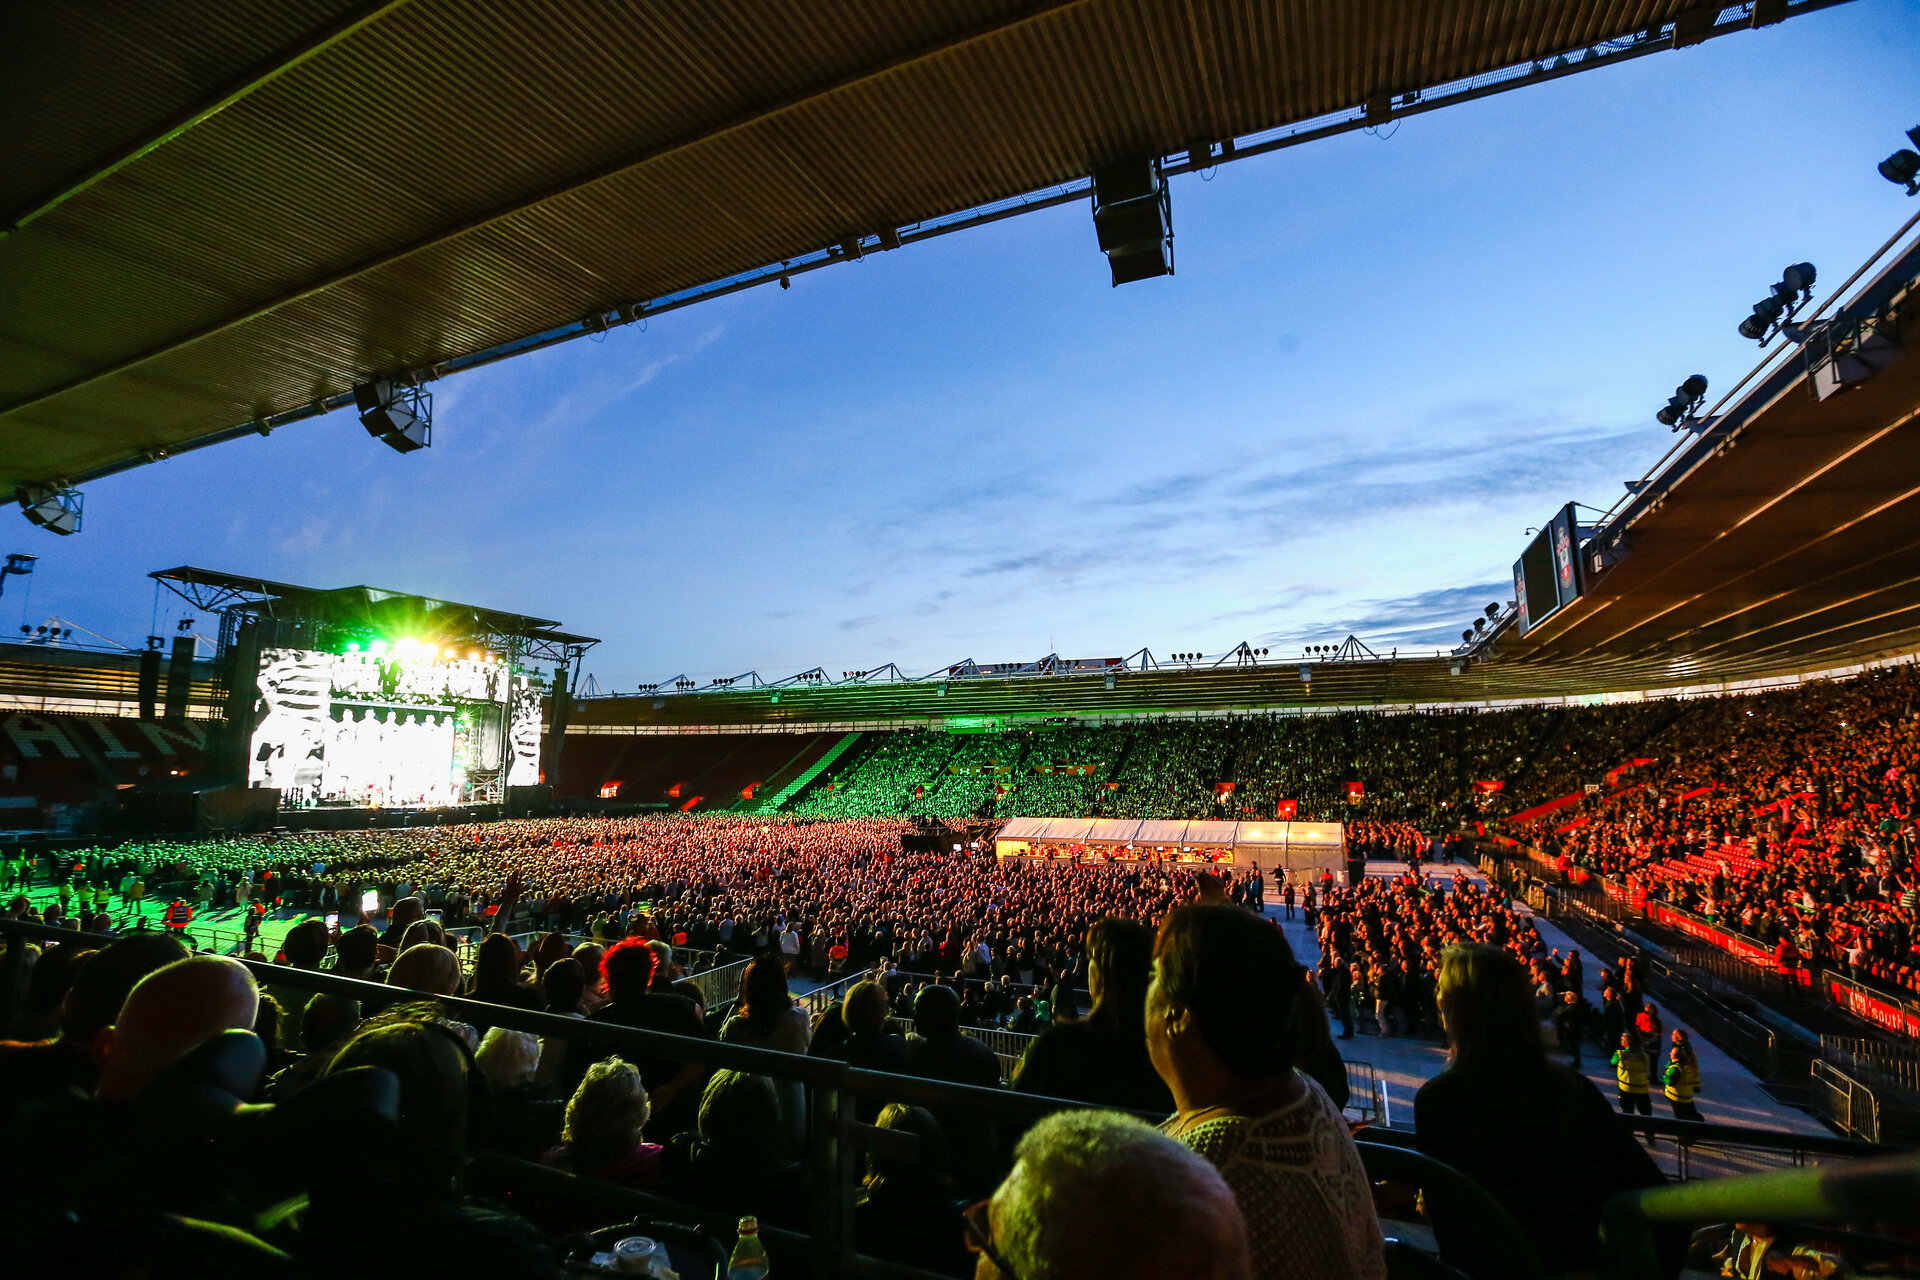 SOUTHAMPTON, ENGLAND - MAY 31:  General View during The Rod Stewart Concert pictured at St Marys Stadium on May 31, 2019 in Southampton, England. (Photo by James Bridle - Southampton FC/Southampton FC via Getty Images)